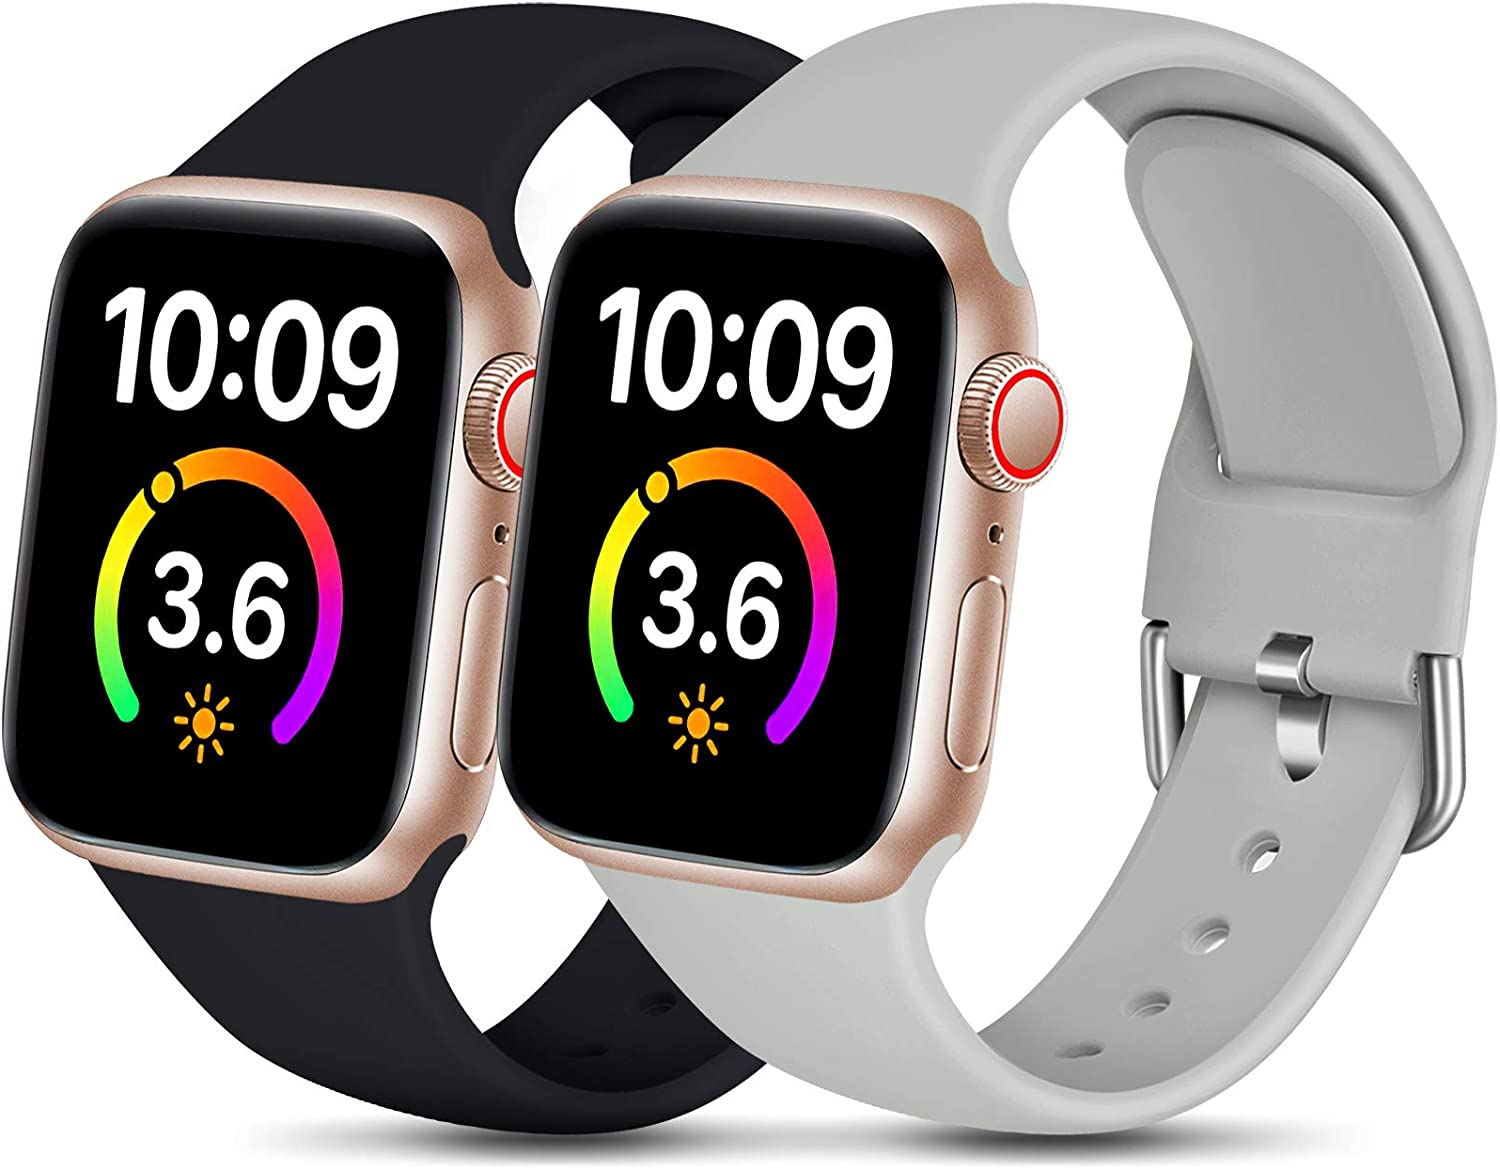 Dirrelo Compatible for Apple Watch Bands 40mm 38mm Series SE 6 5 4 3 2 1 Strap, Soft Silicone Replacement Sport Wrist Band for iwatch Band Women Men, Small Black & Gray 2-Pack